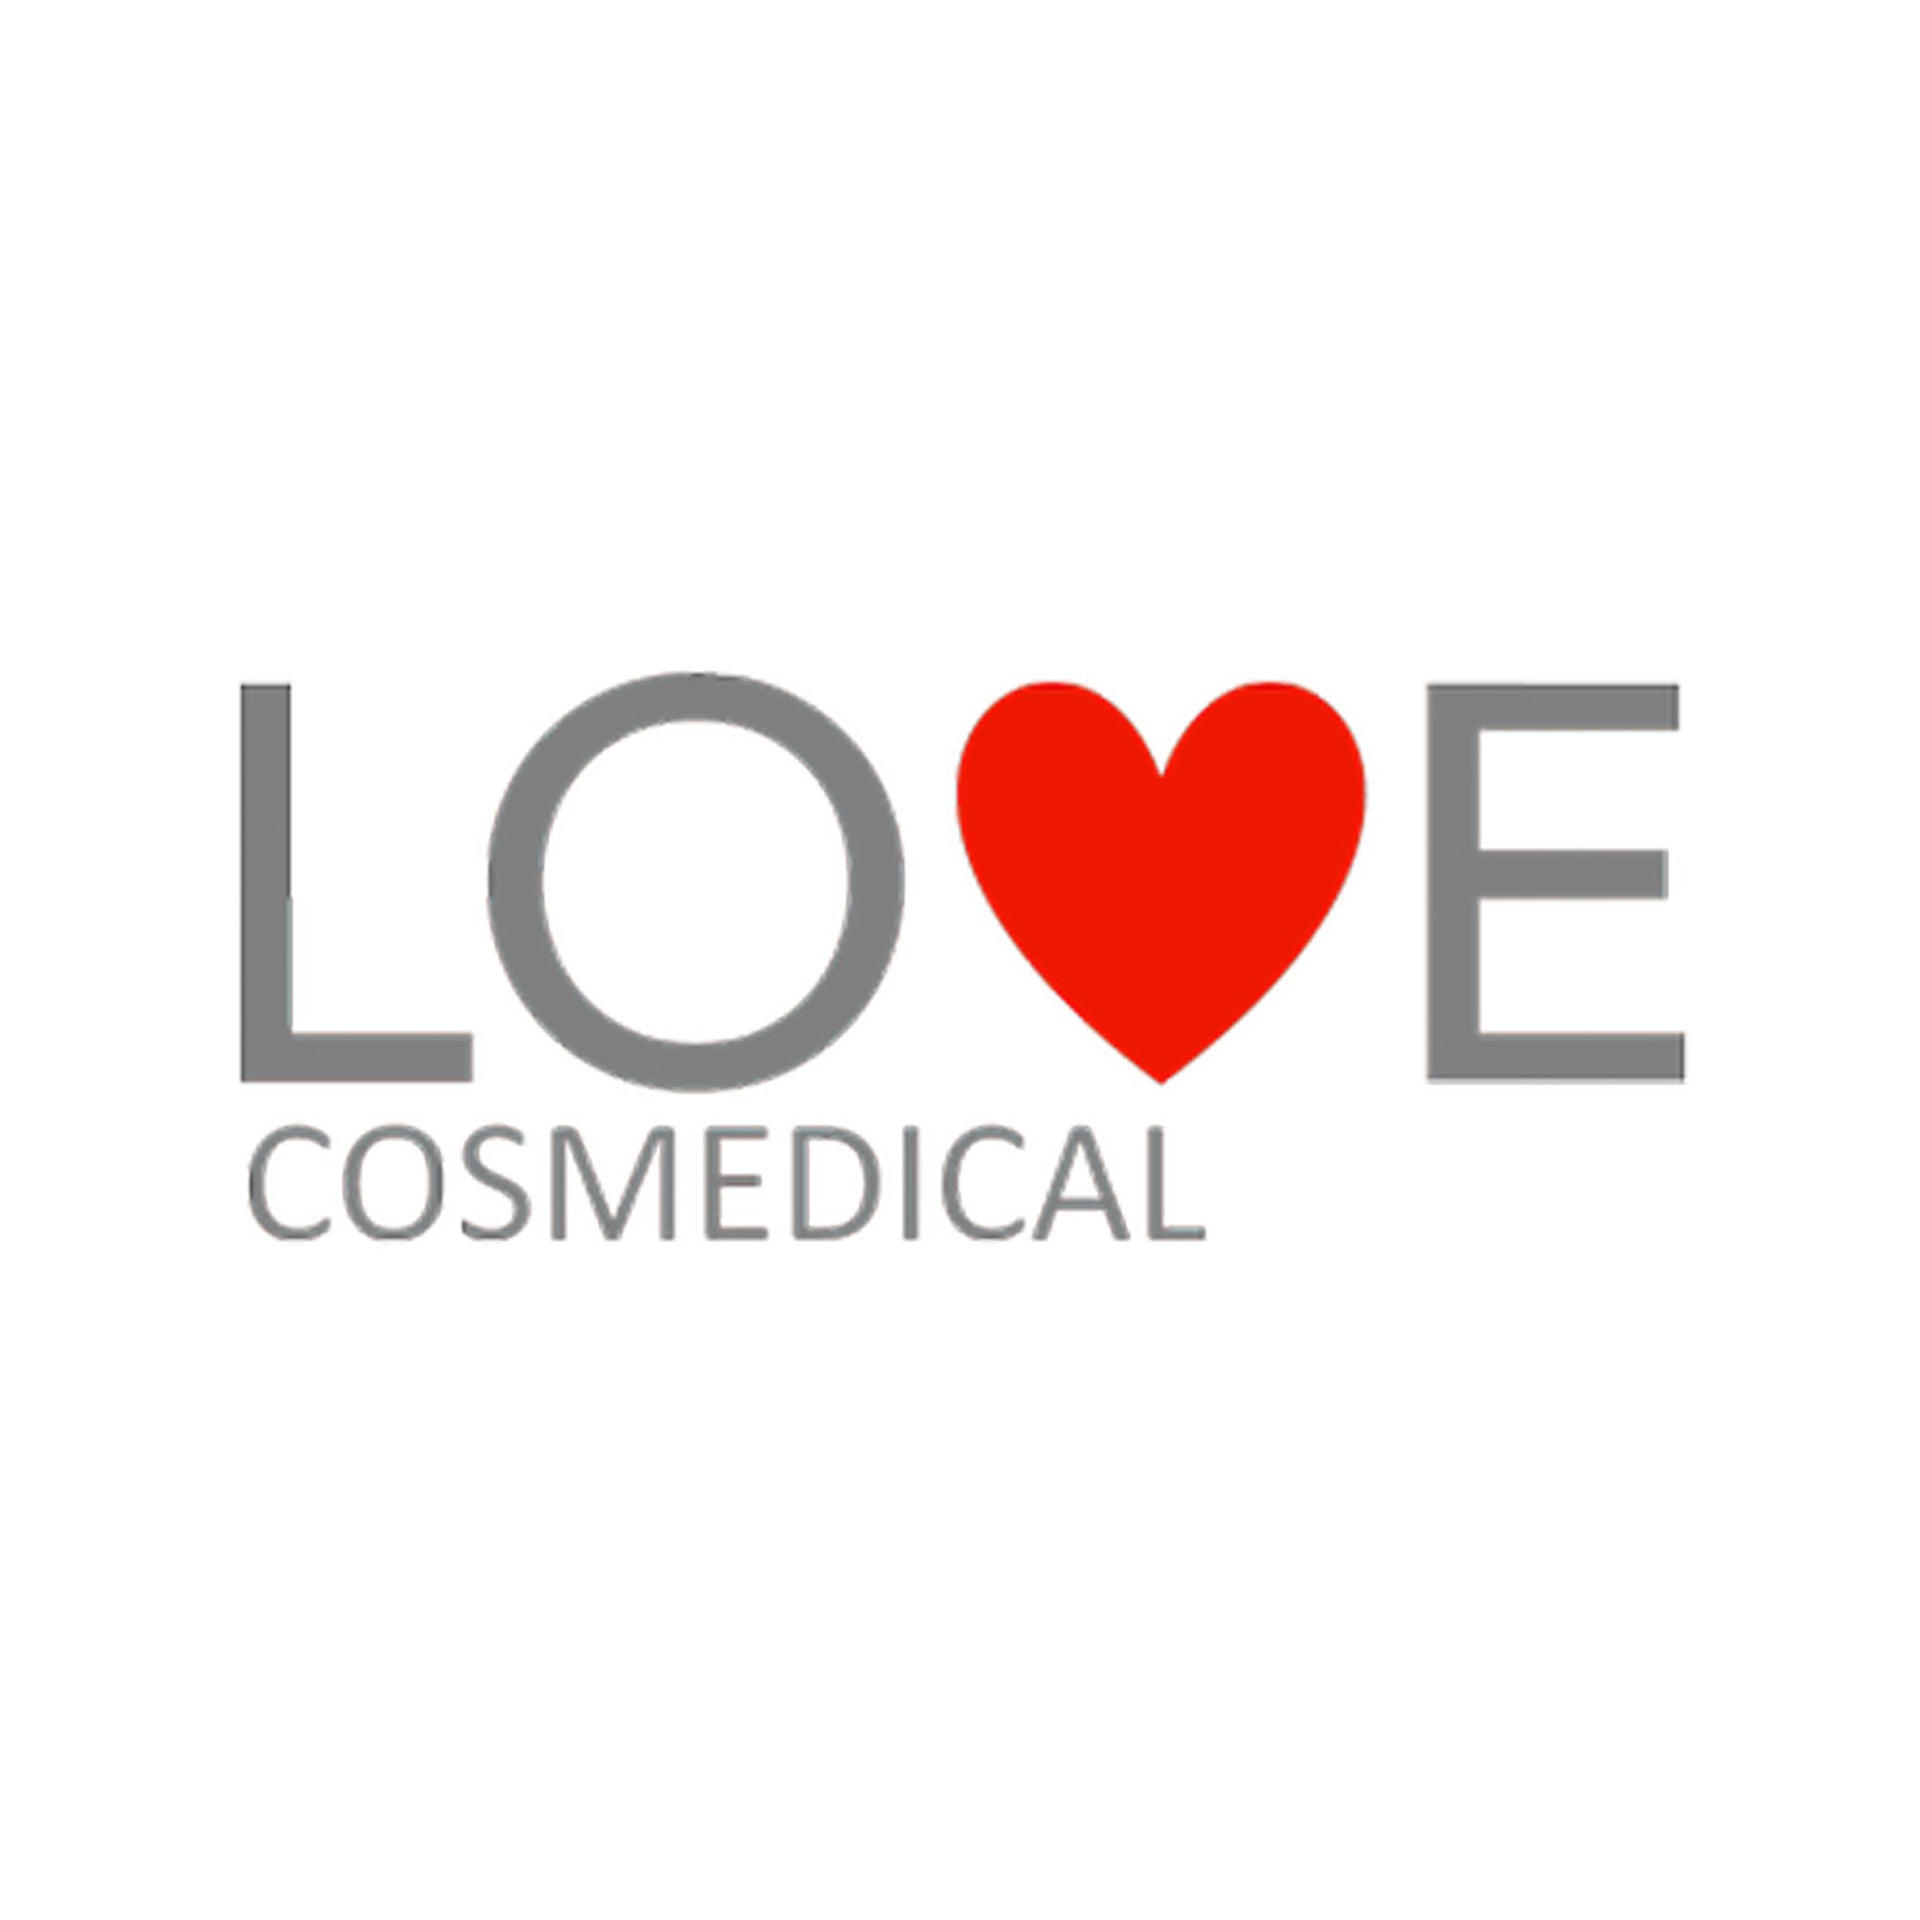 Love Cosmedical intraponeedle